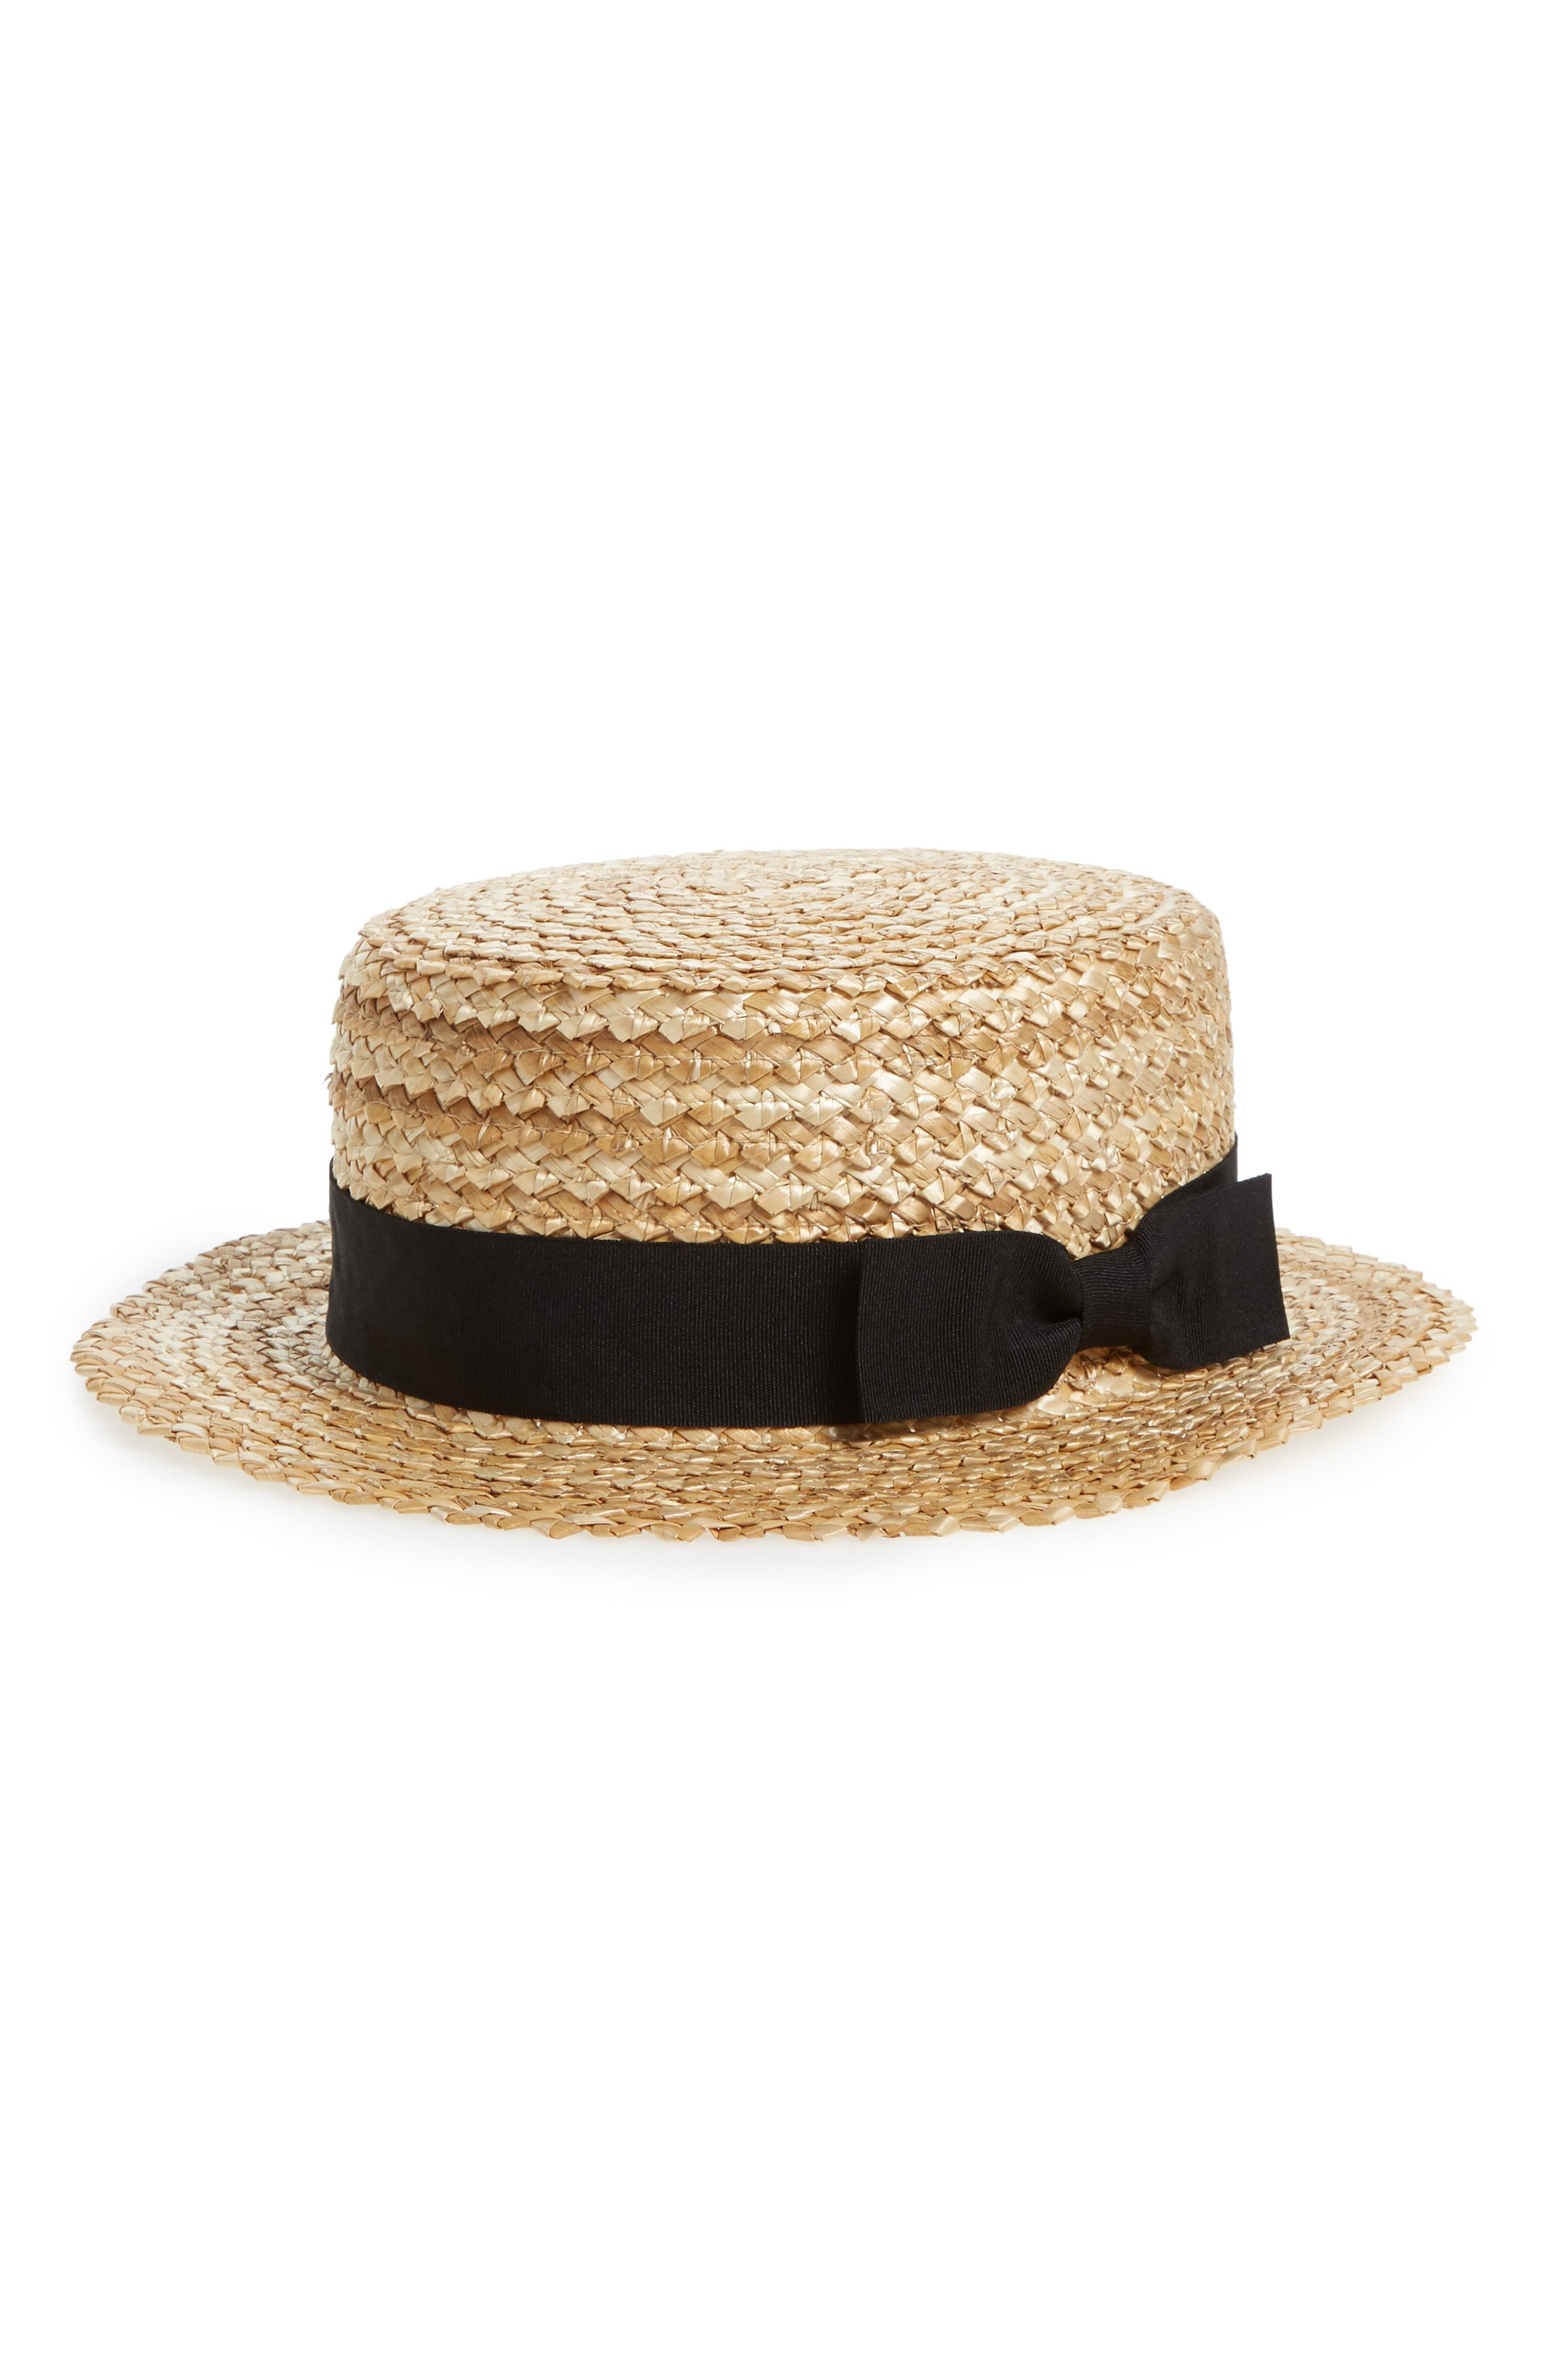 Alternate Image 1 Selected - Kitsch Ribbon Straw Boater Hat